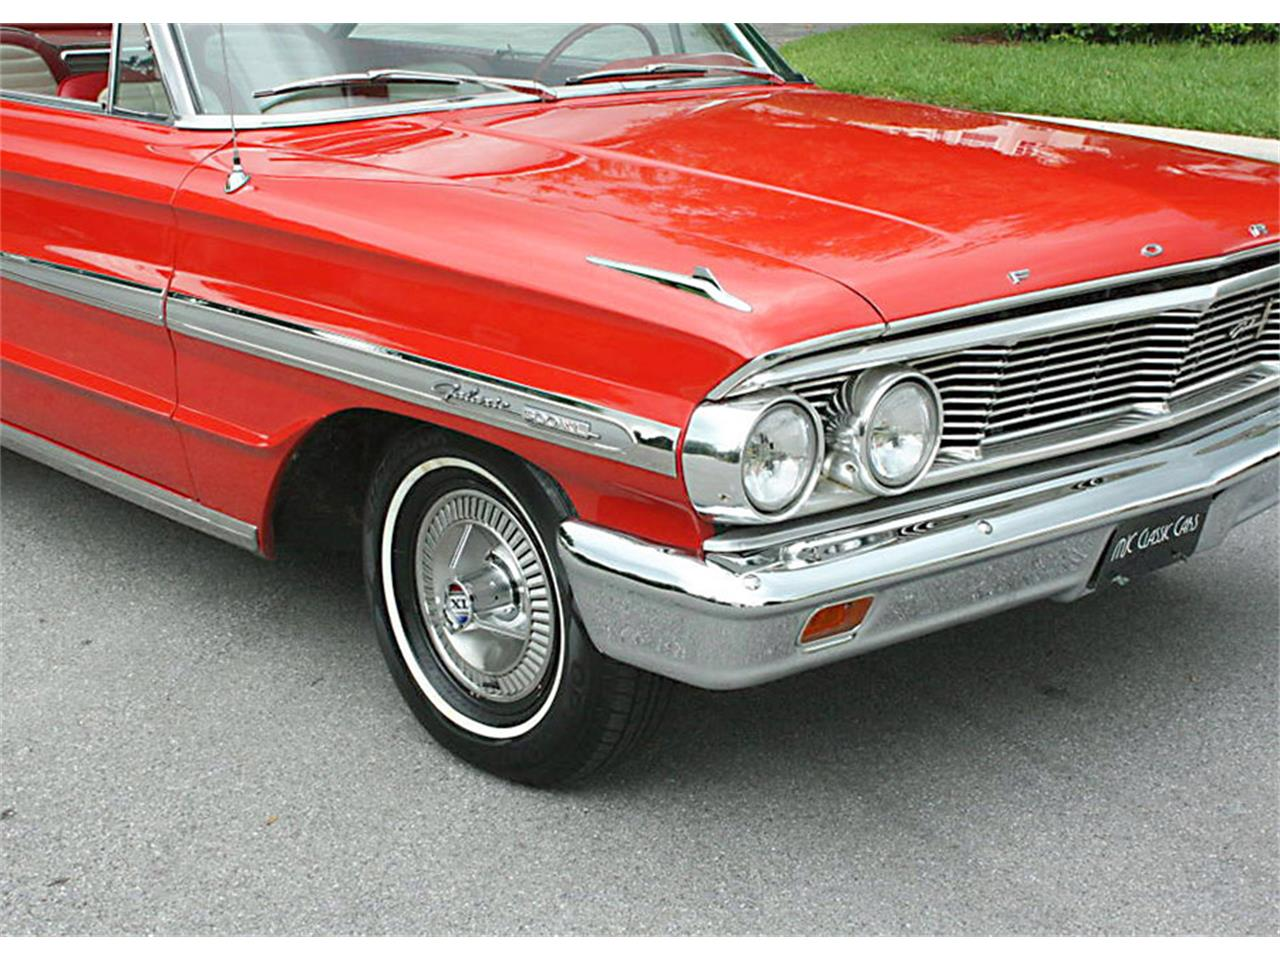 Large Picture of '64 Ford Galaxie 500 located in Florida - $27,500.00 Offered by MJC Classic Cars - NOH3